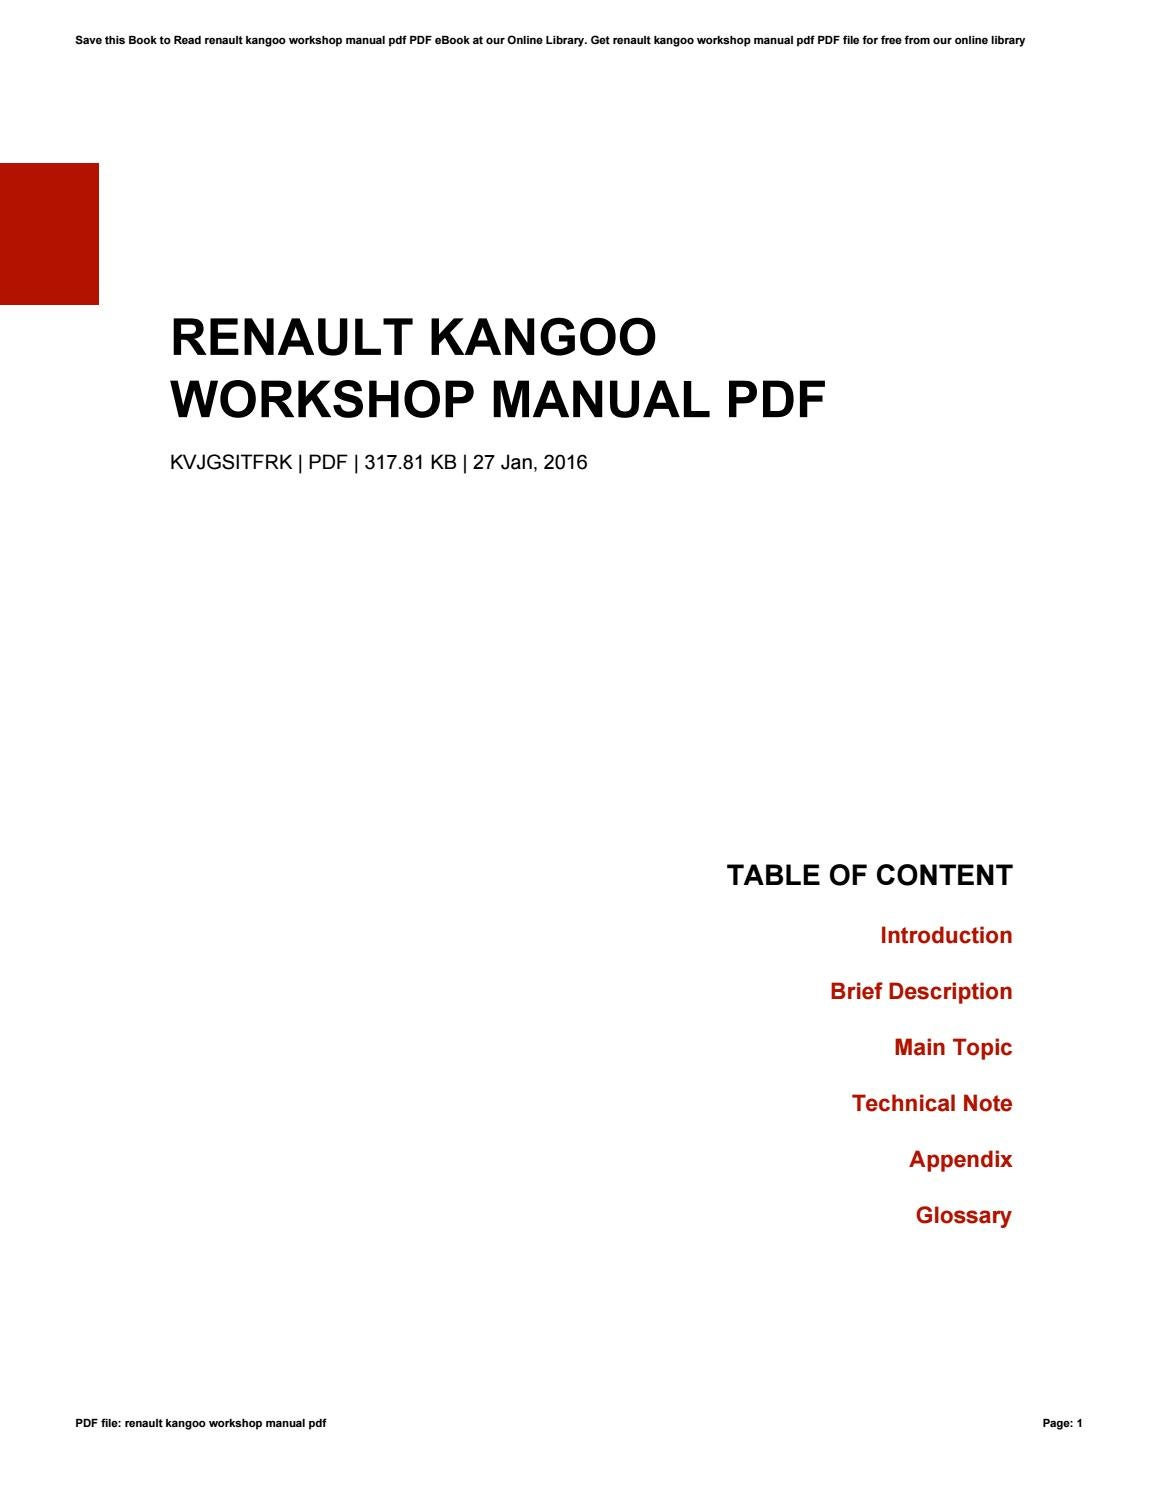 Renault kangoo workshop manual pdf by successlocation39